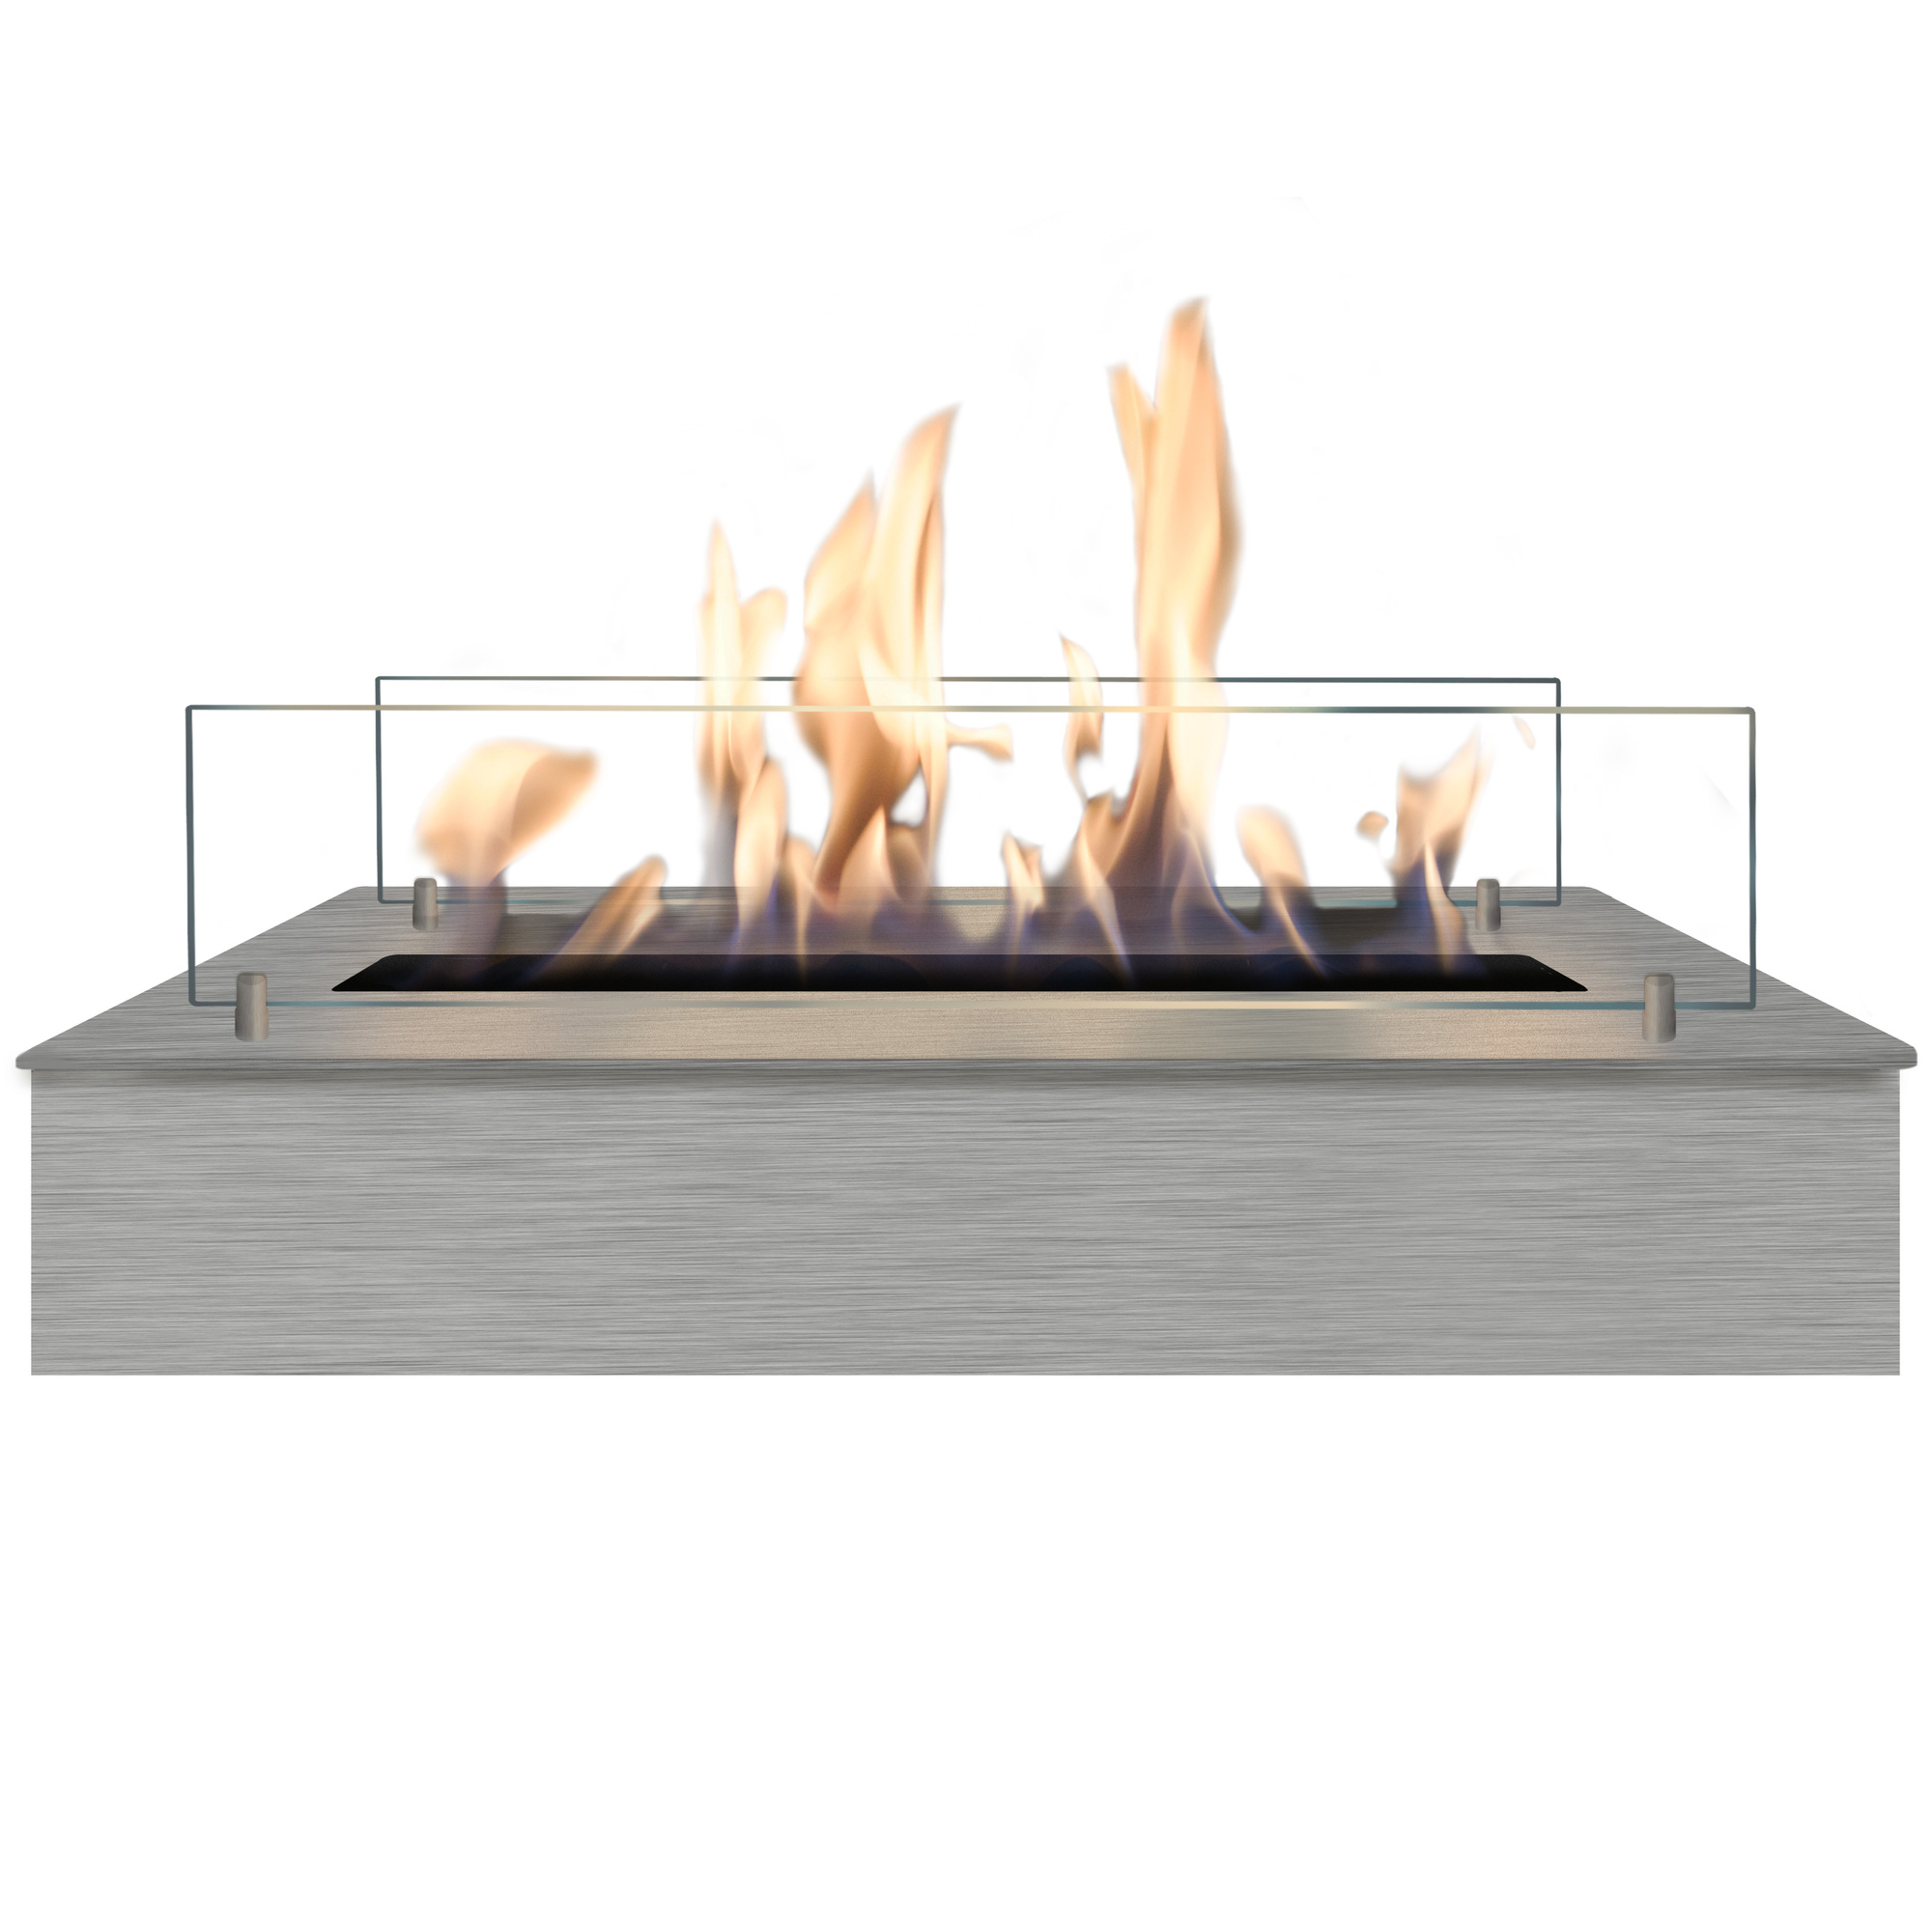 RUBY HOLLAND Bioethanol Burner 5820 Ls Big Burner Inox + Glass